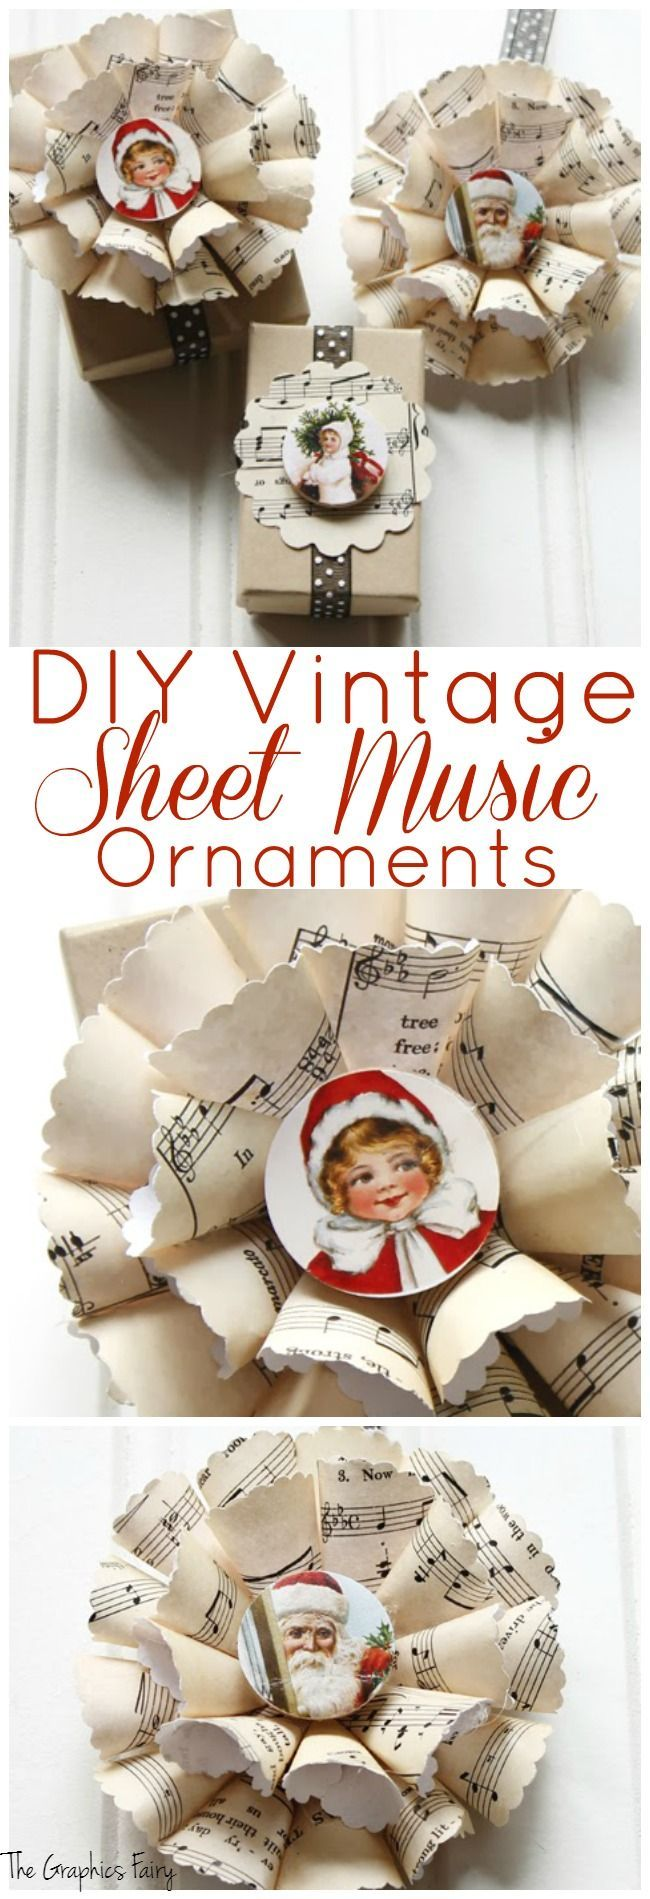 Musical christmas ornaments that play music - Sheet Music Christmas Ornaments